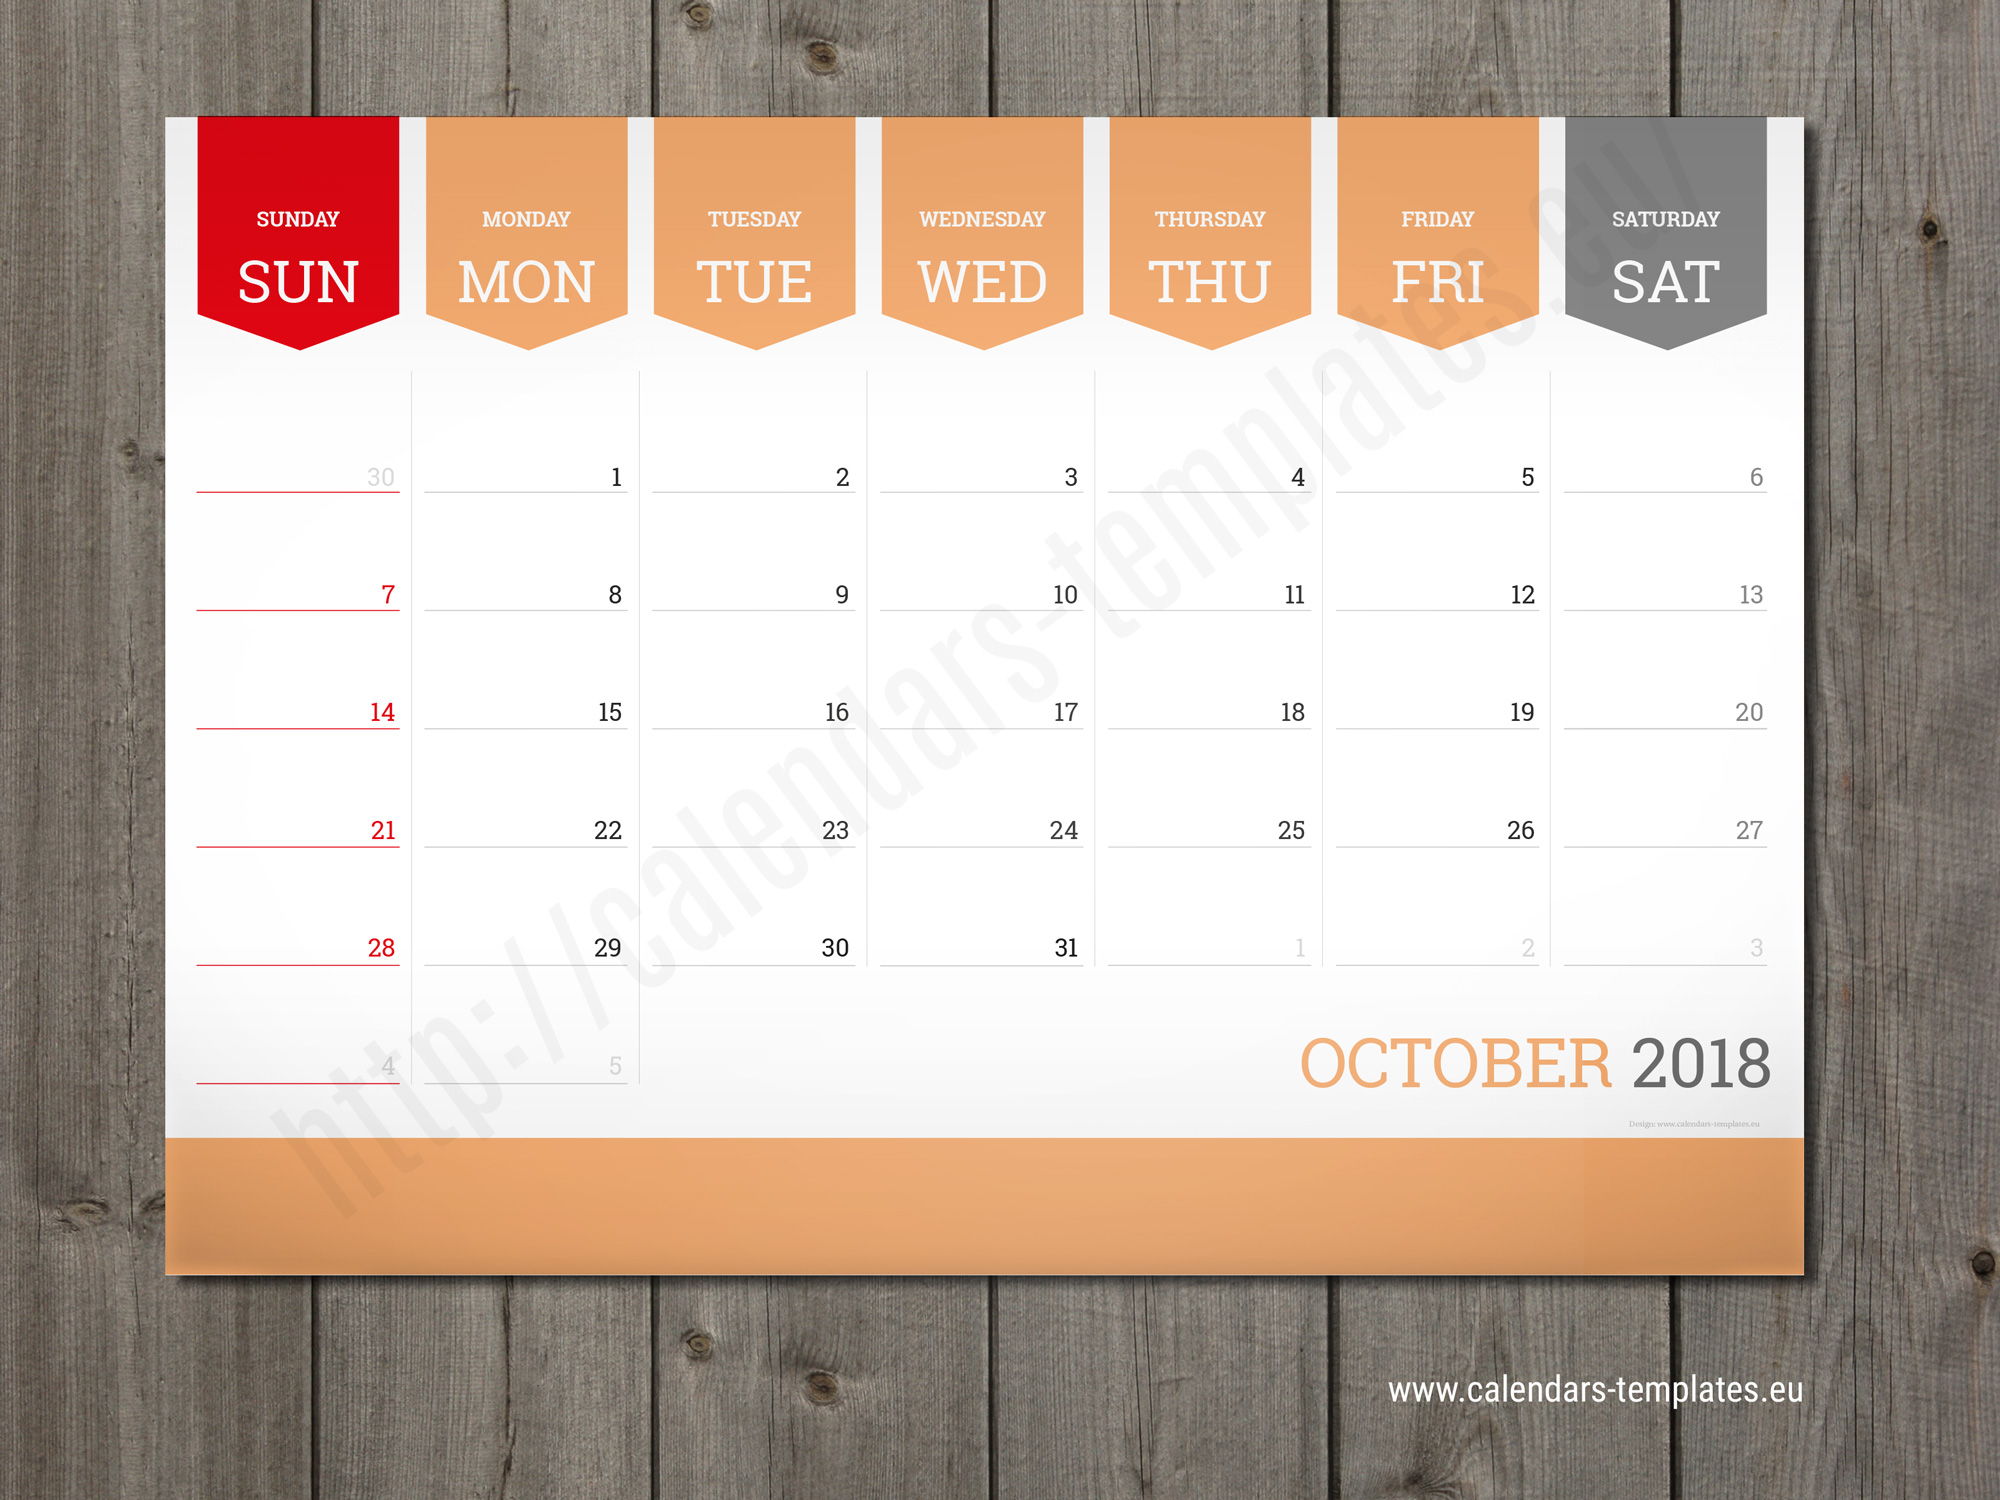 Monthly calendar 2018 planner wall or table pad planner for W3 org table layout